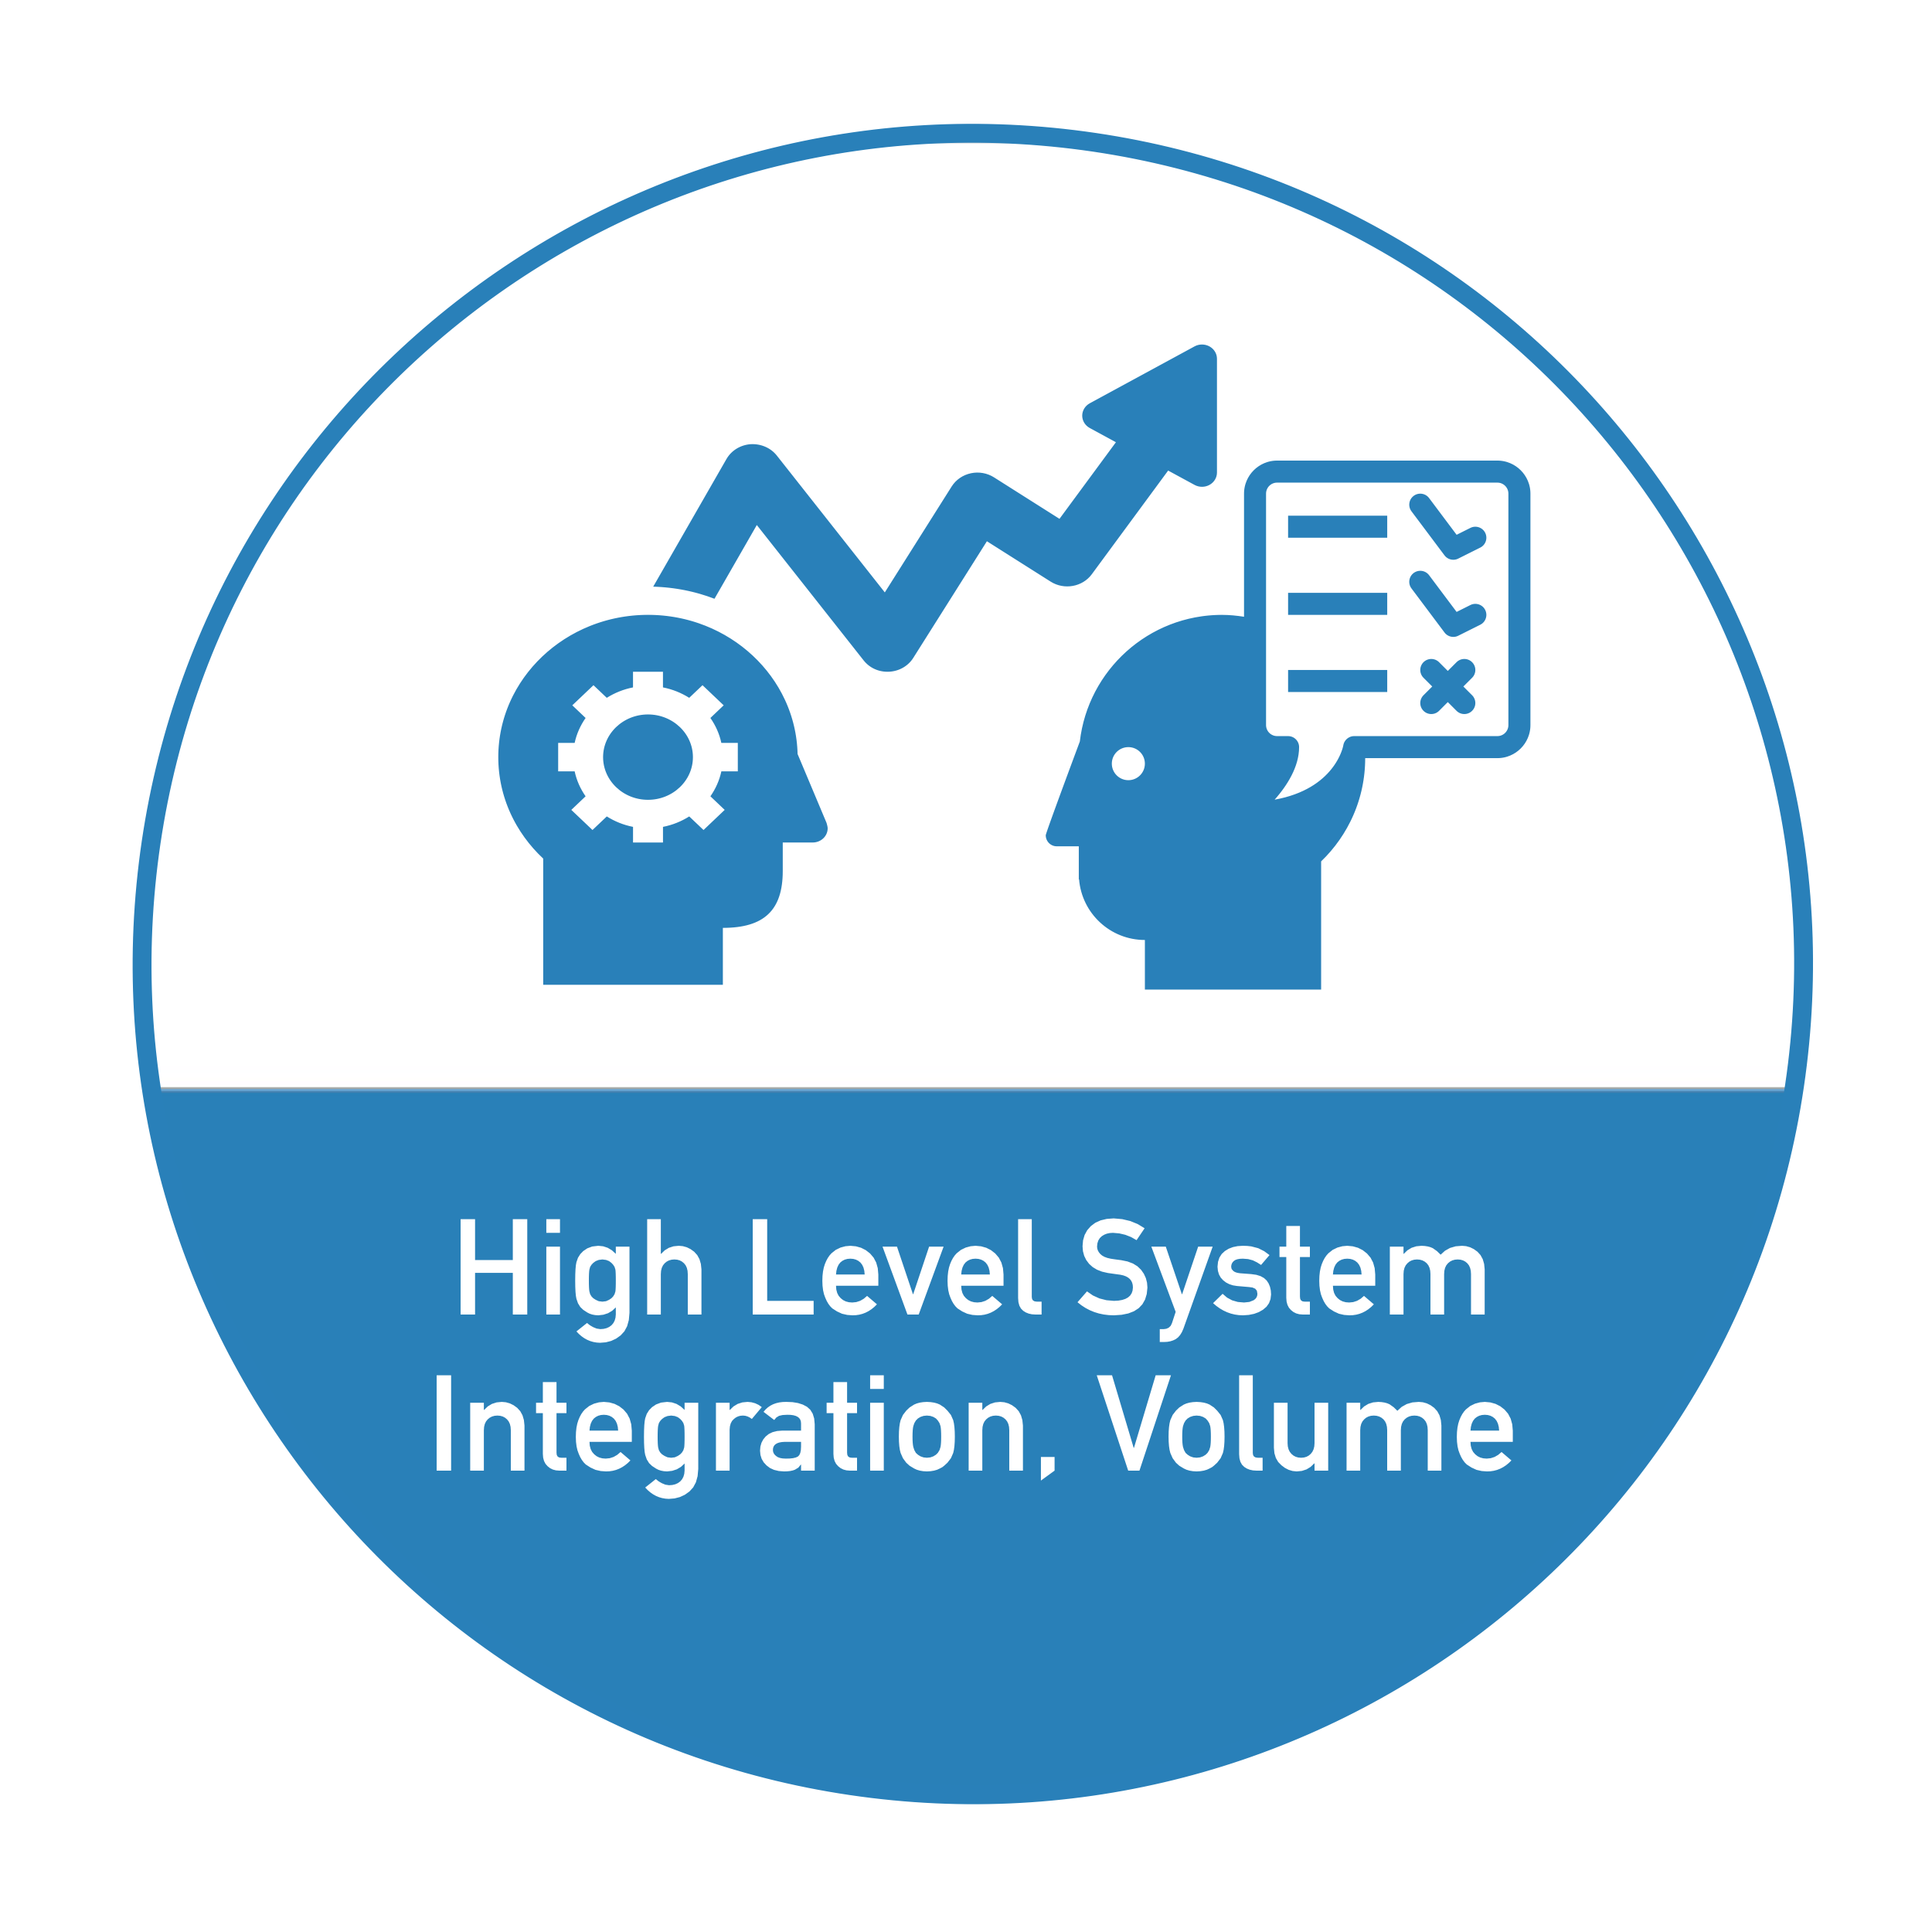 High level system integration